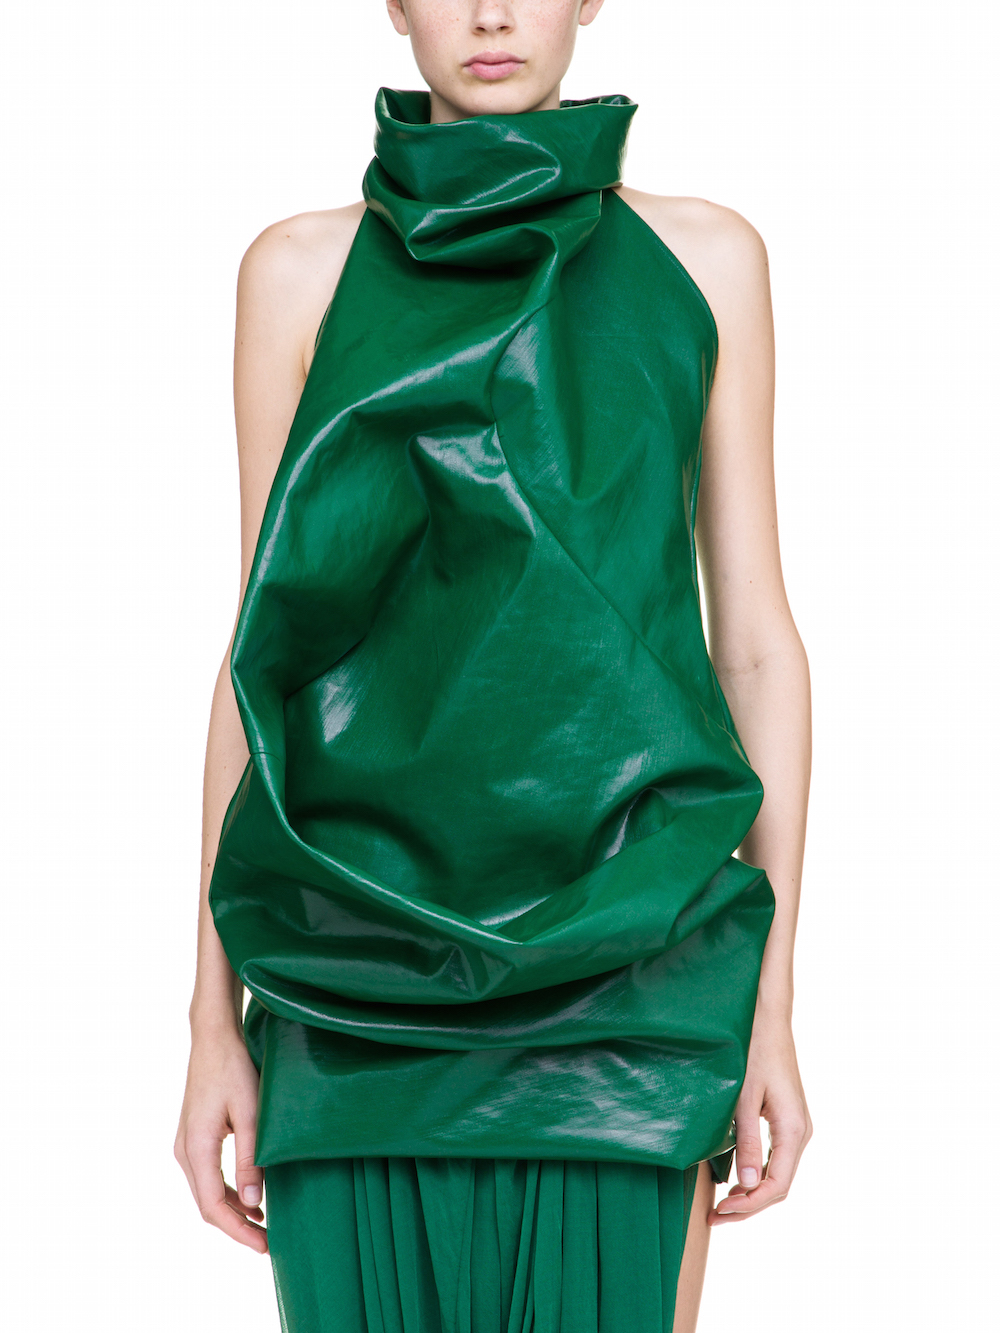 RICK OWENS ELIPSE TUNIC IN GREEN